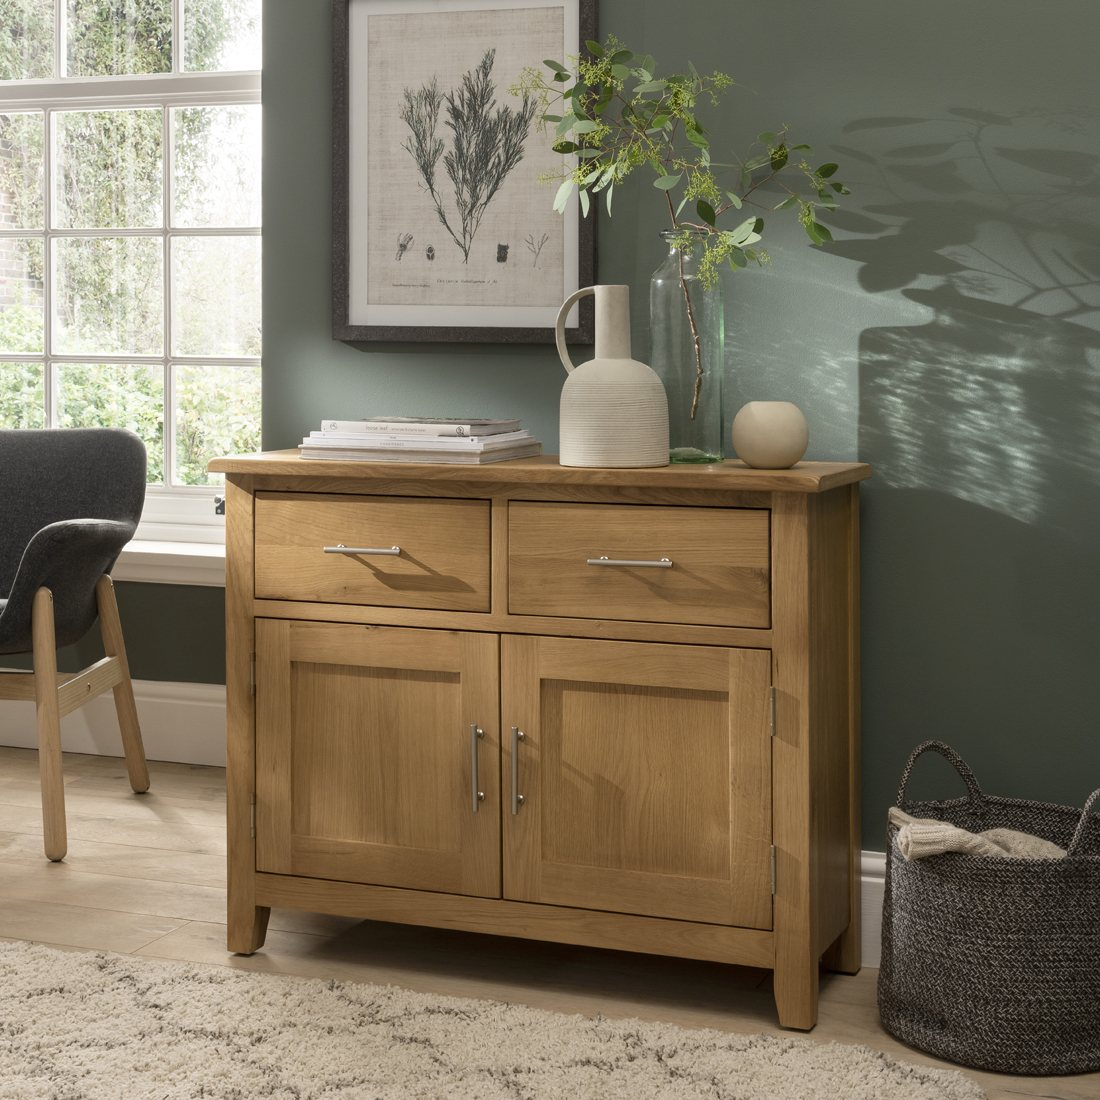 Sideboard Modern Oak City - Nebraska Modern Oak 2 Door 2 Drawer Sideboard - Furniture World